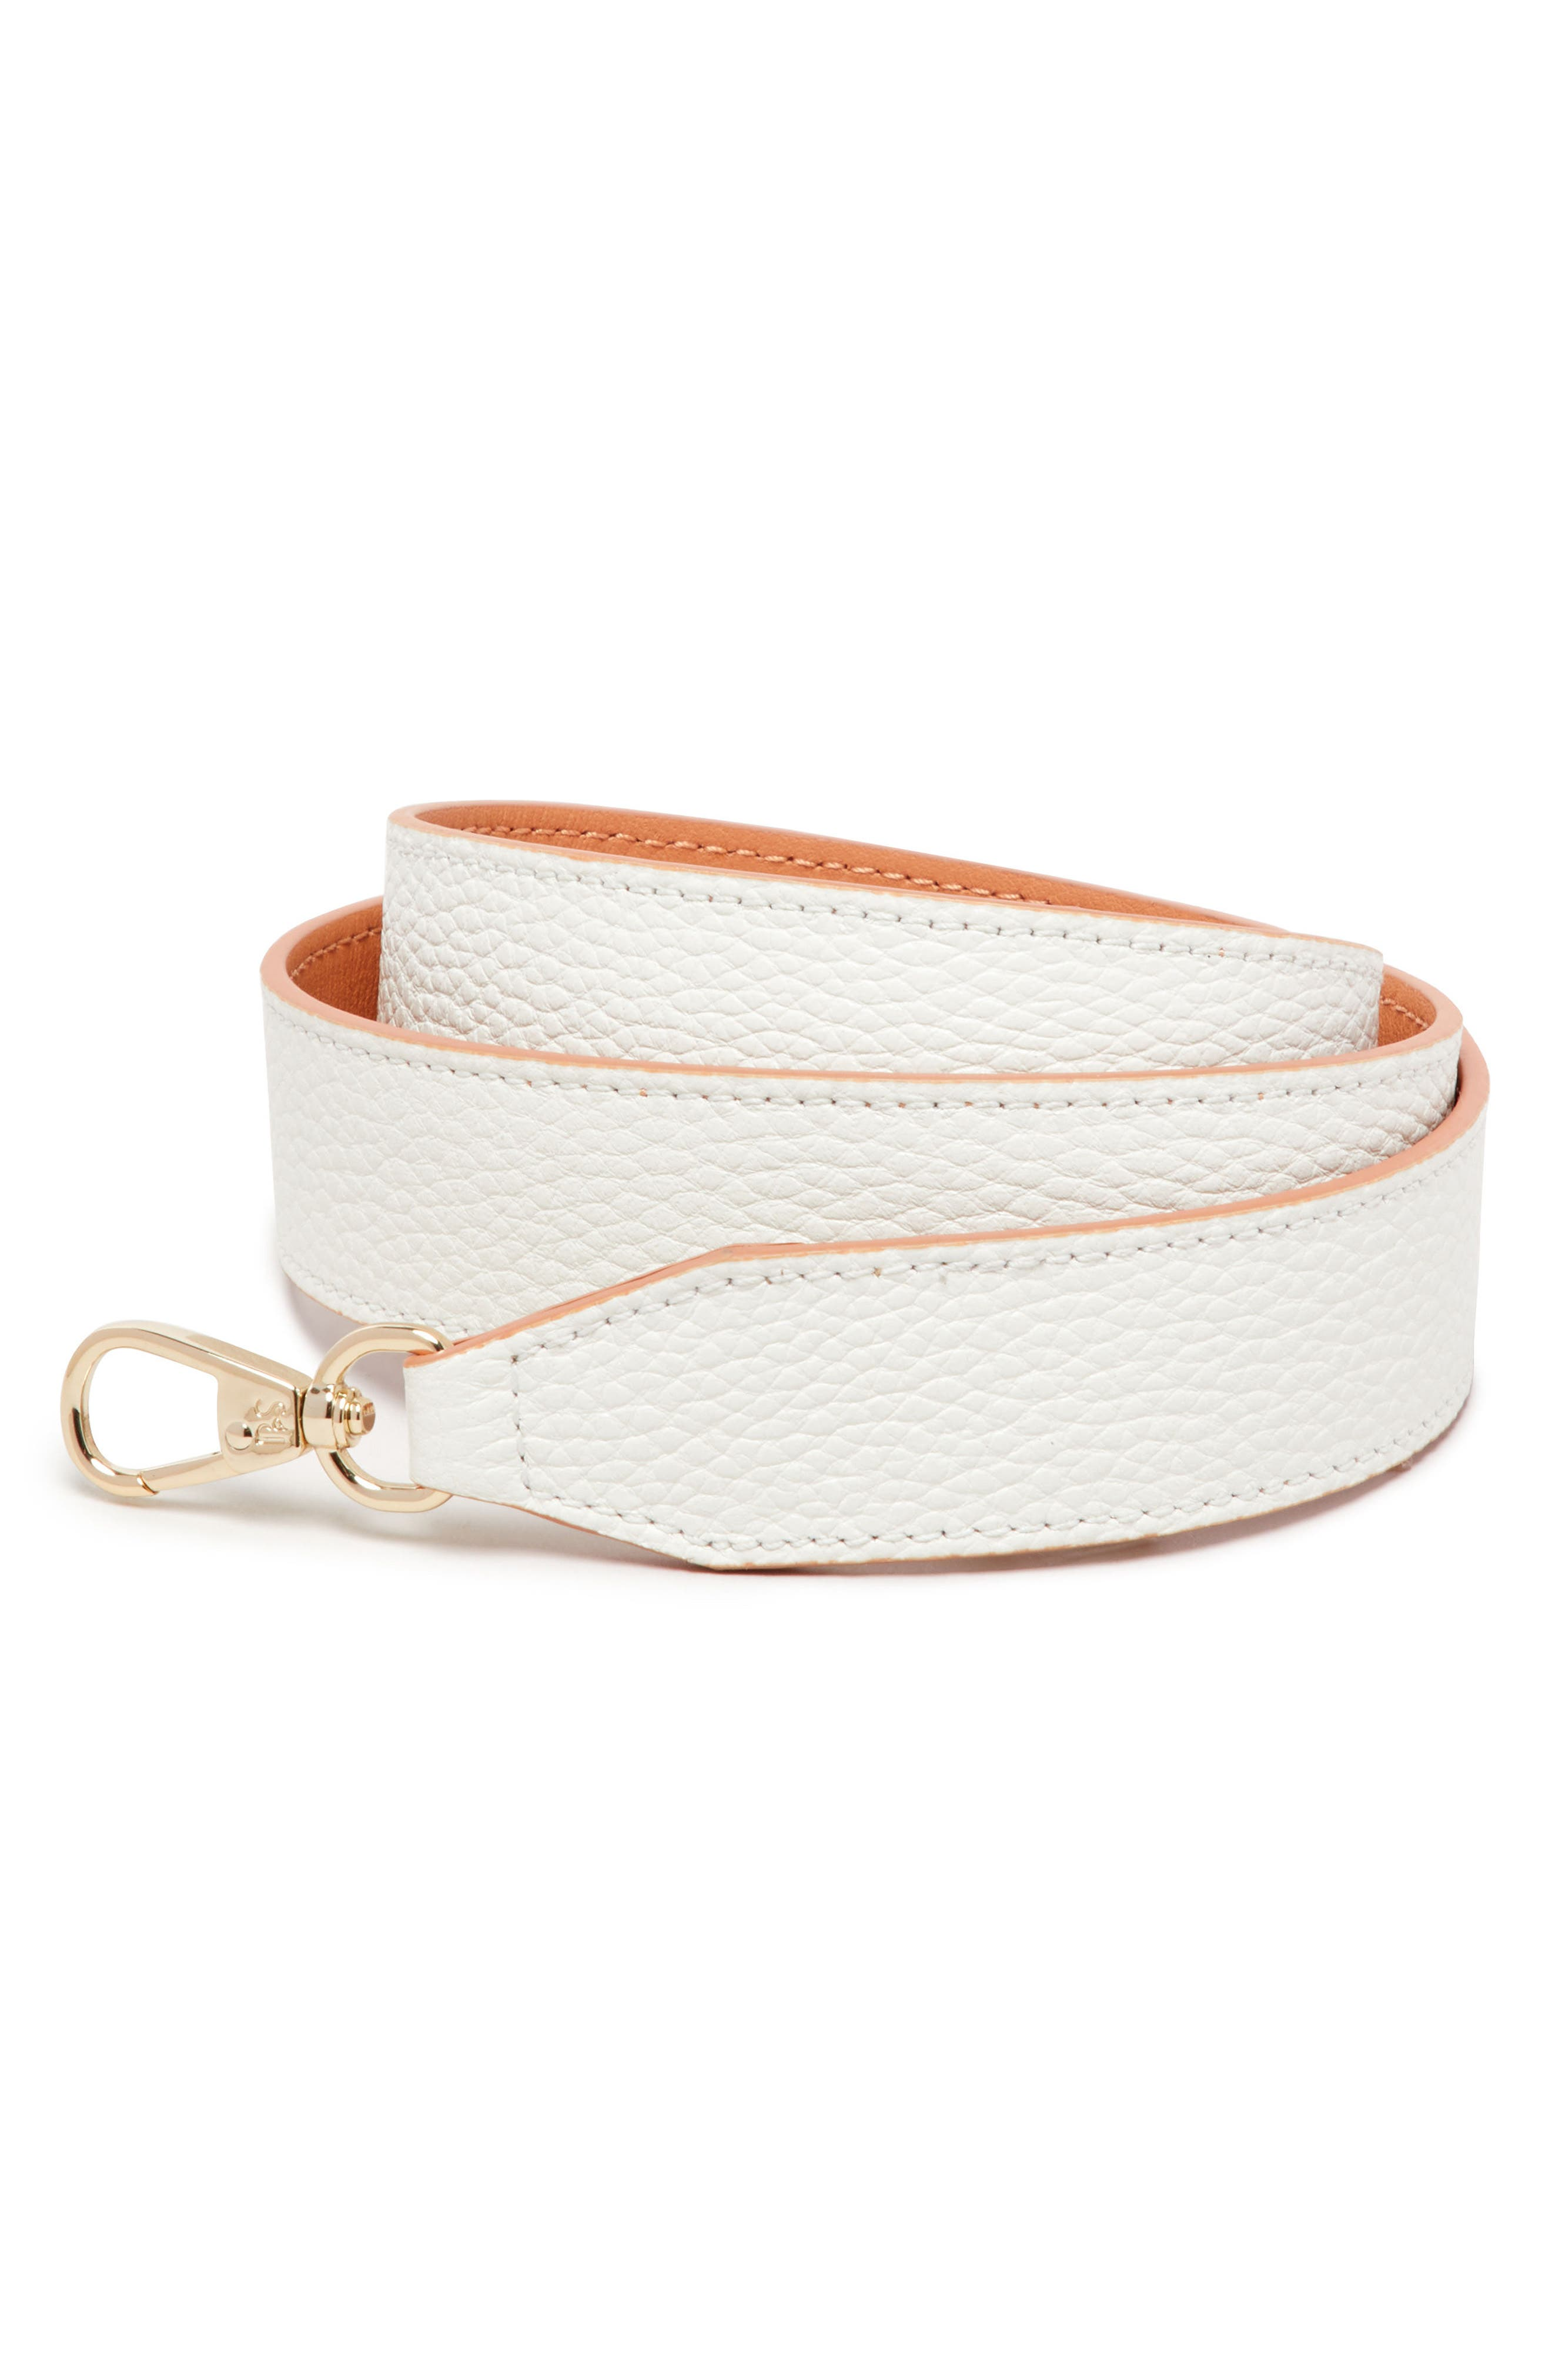 POP & SUKI,                             Wide Pebbled Leather Strap,                             Main thumbnail 1, color,                             101